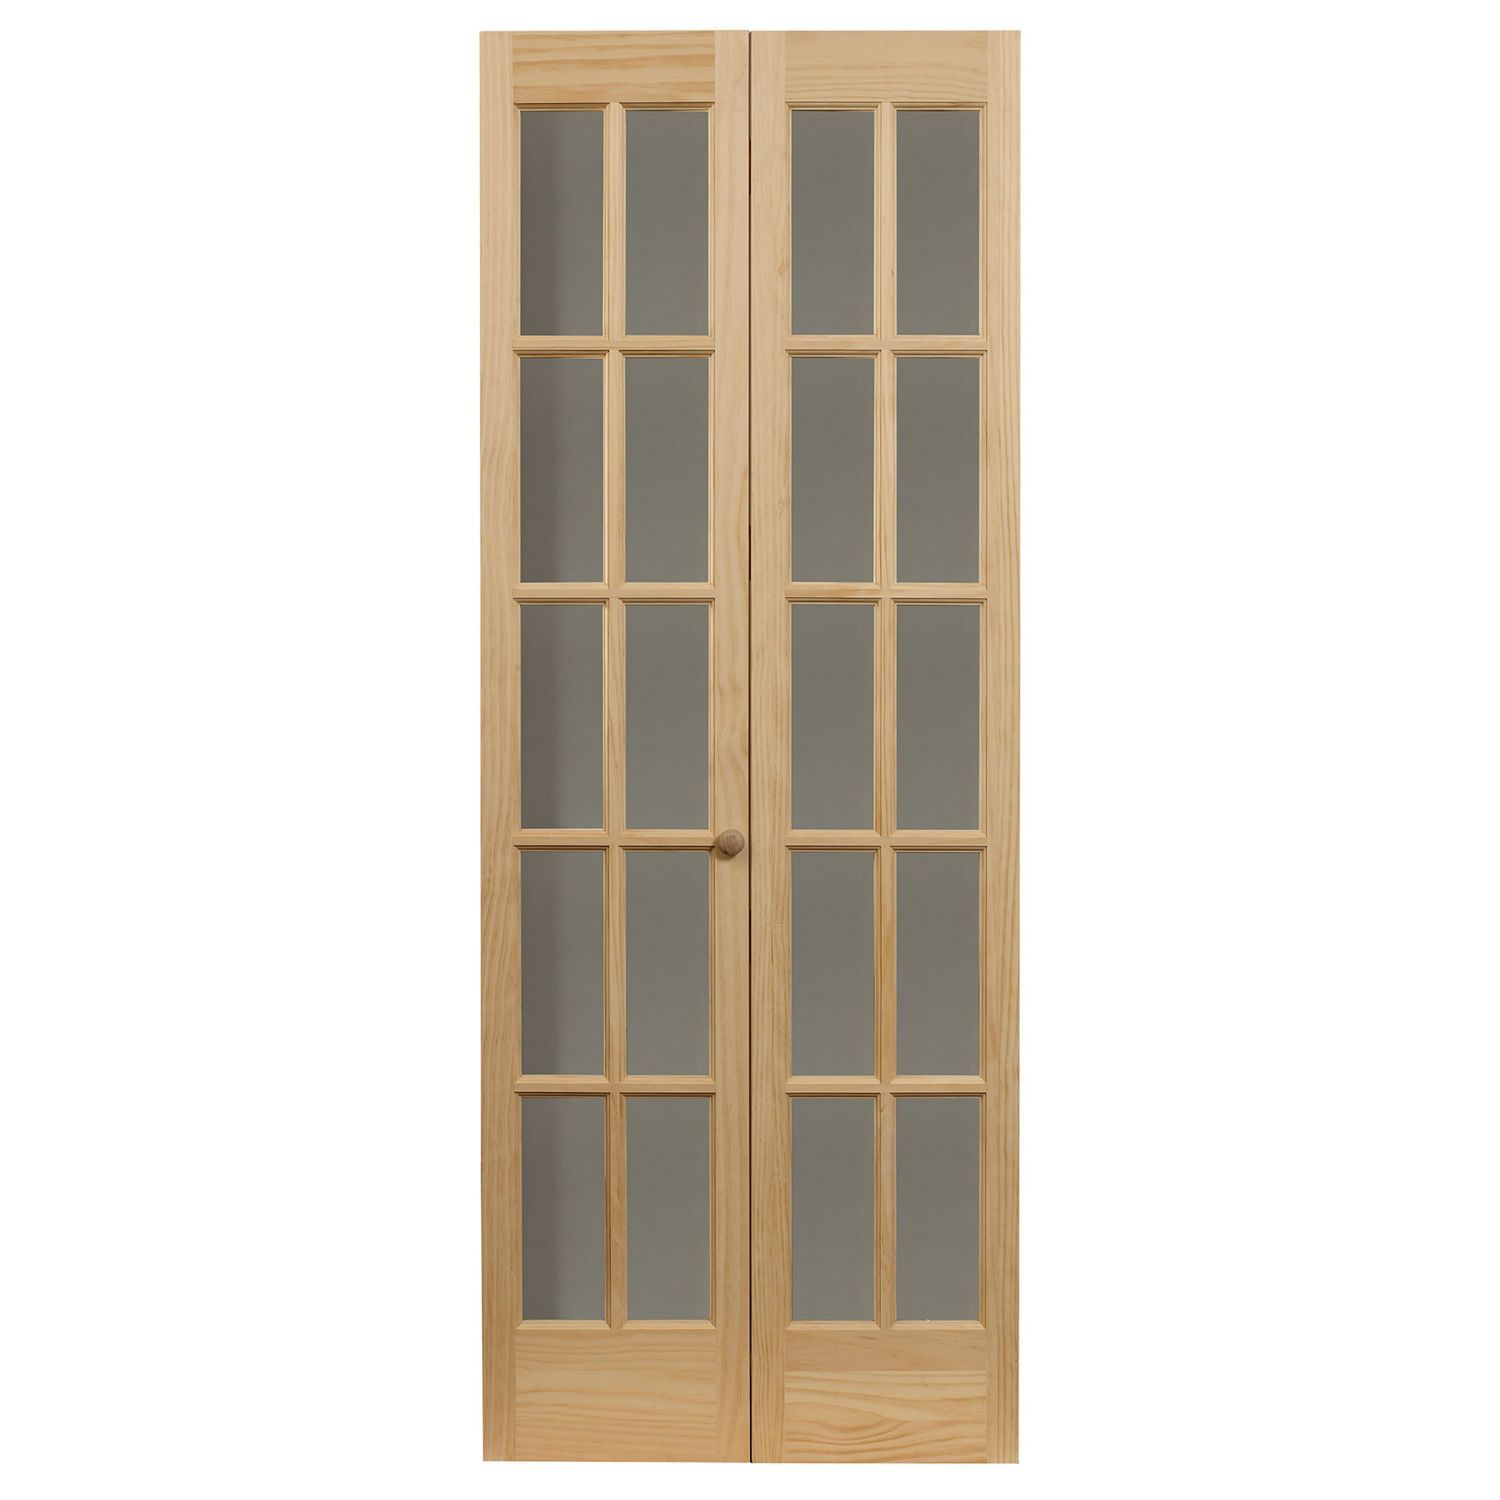 Ltl Traditional Divided Gl Unfinished Wood Tone Bifold Door 527 24 X 80 1 2 Brown Size 24x80 5